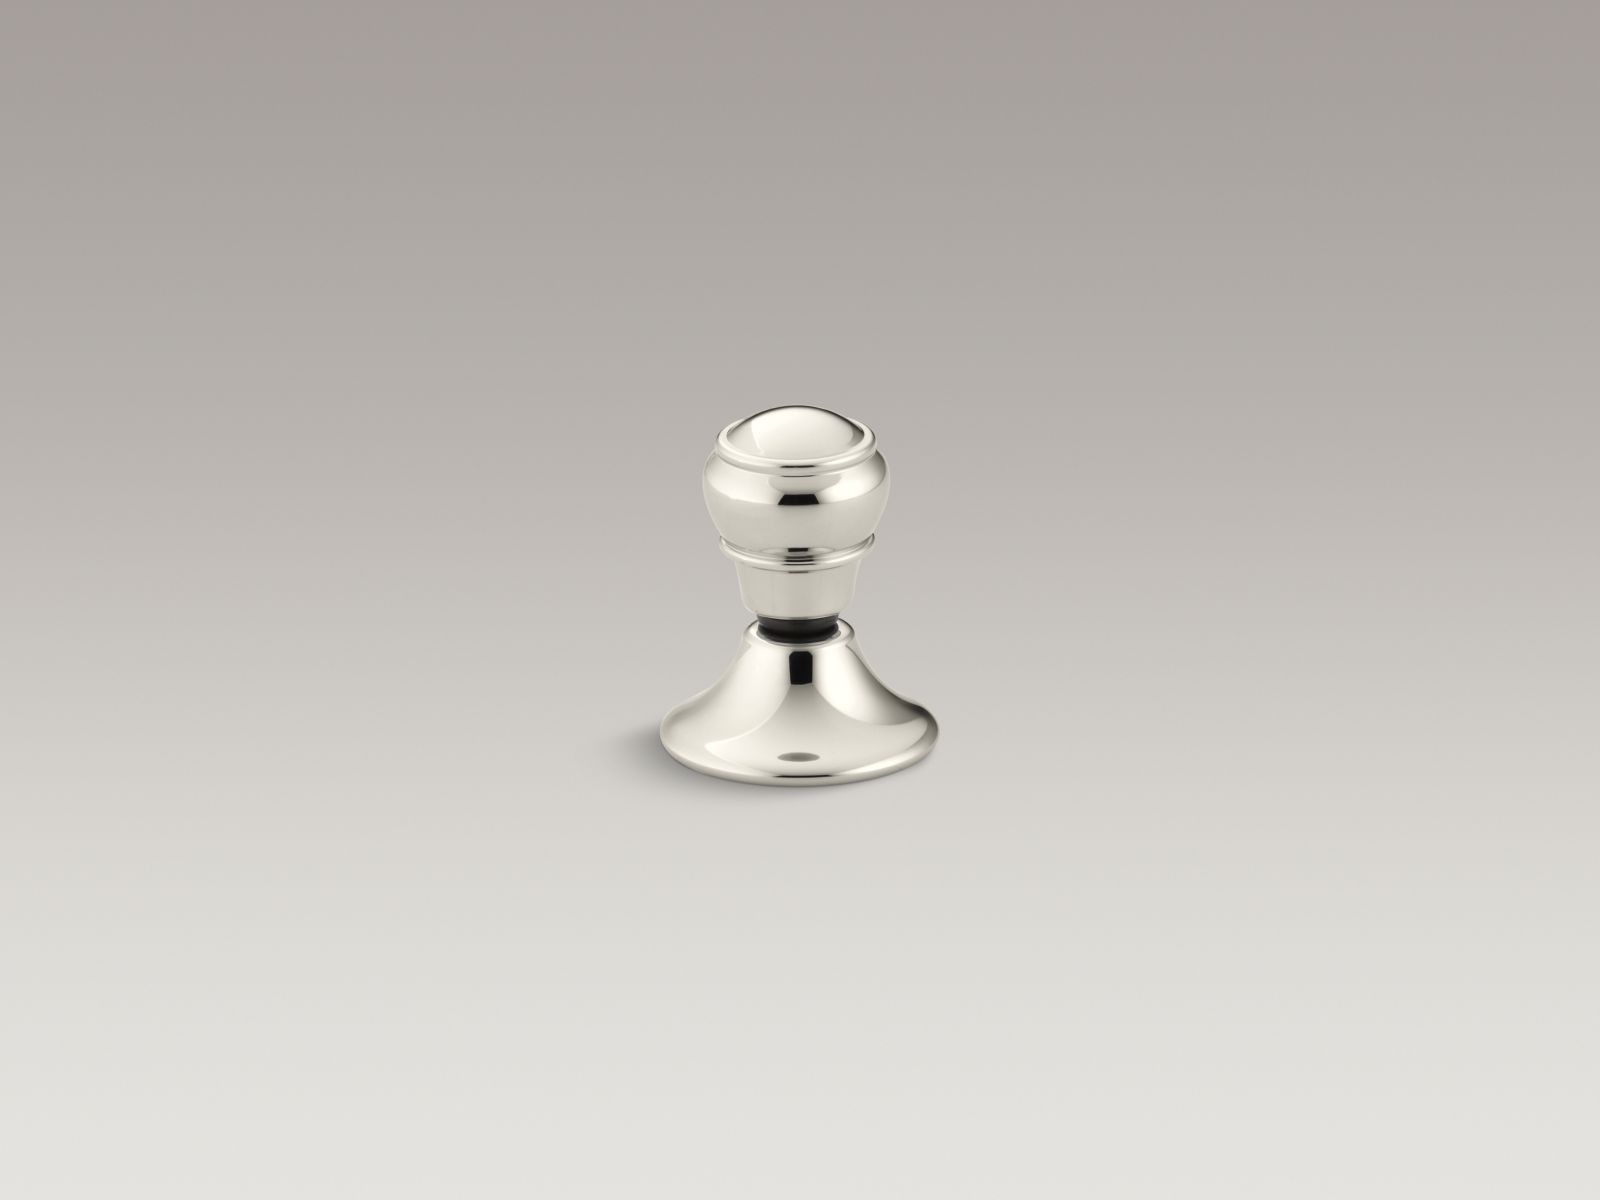 Kohler Portrait® K-7677-SN lift knob flush actuator for K-3826 Vibrant Polished Nickel